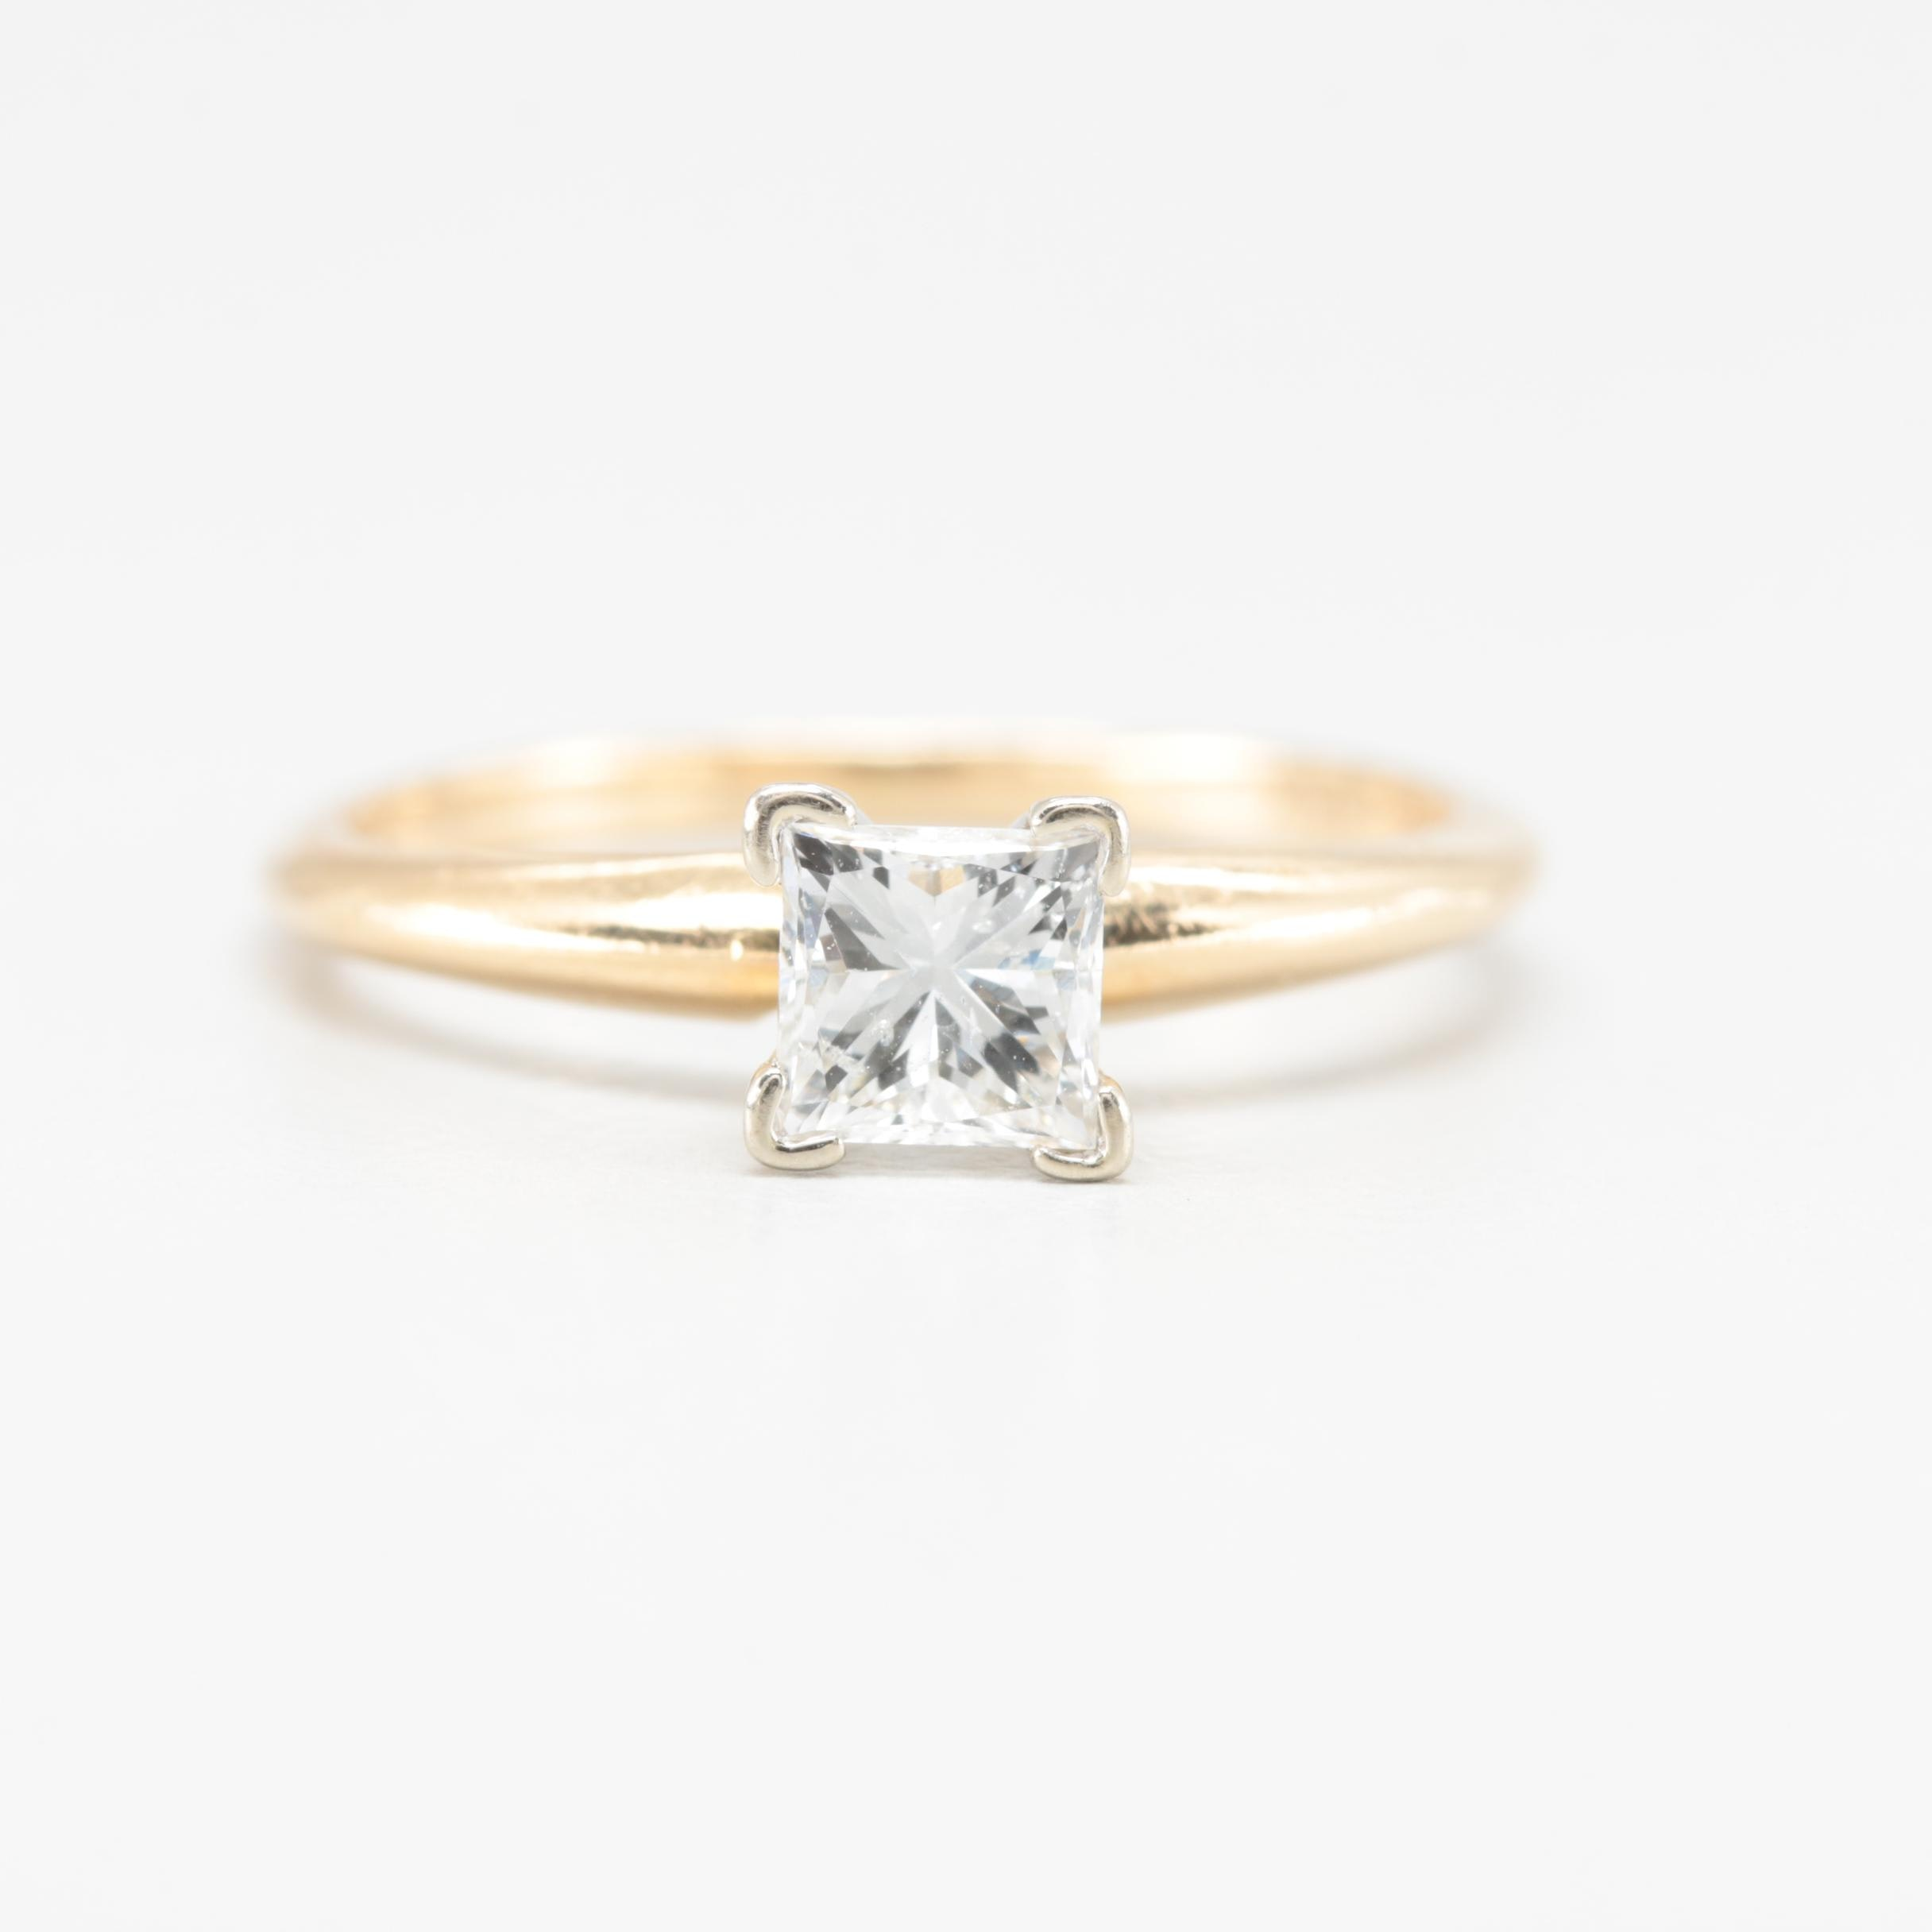 14K Yellow Gold Diamond Solitaire Ring with 18K White Gold Accent